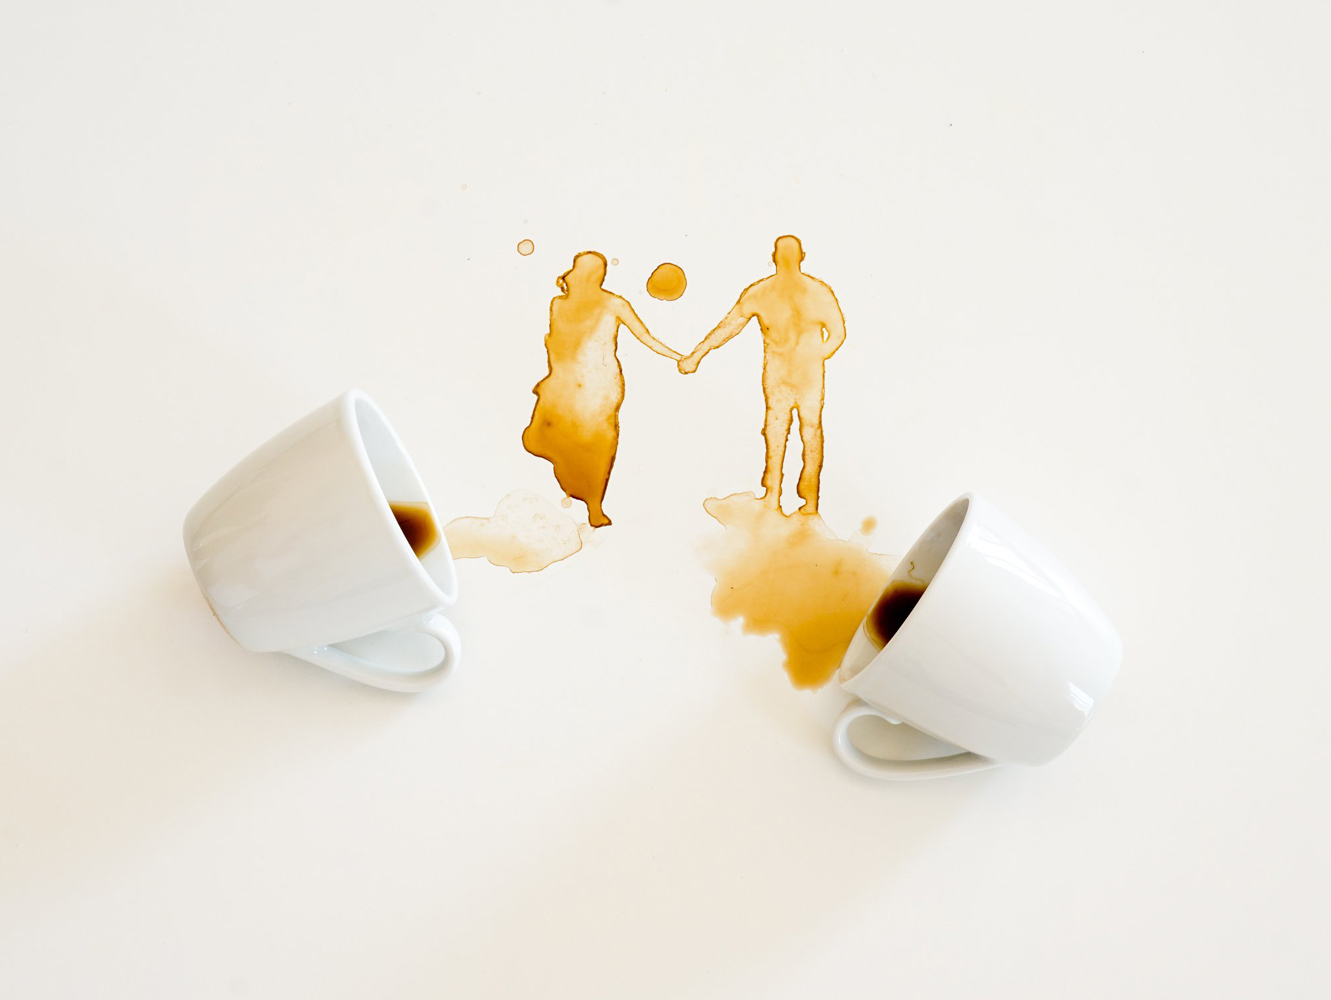 Guilia Bernardelli spilled coffee